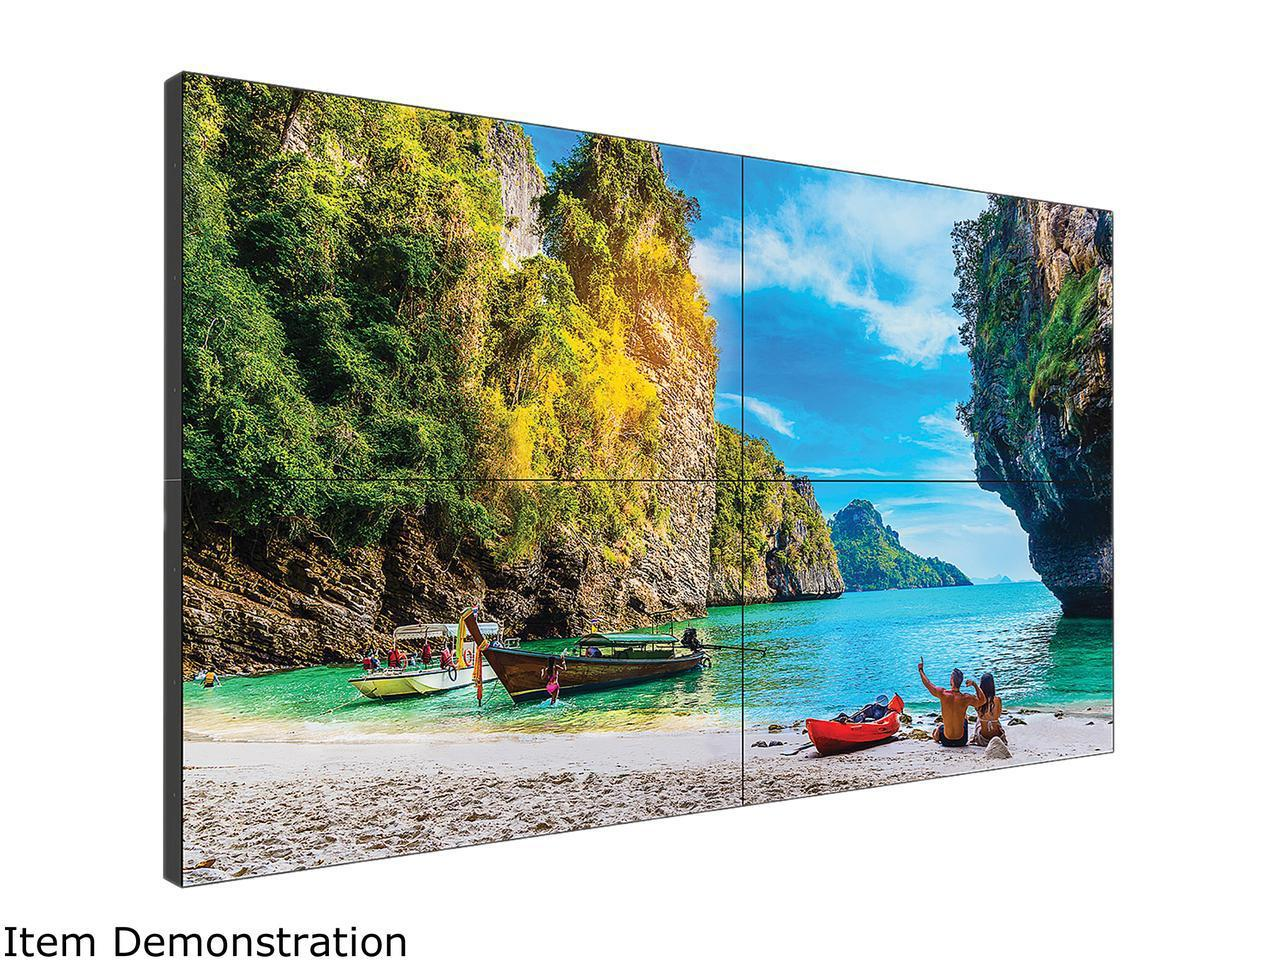 "Planar VM55MX-X - 55"" Commercial LED Display - 1080p"